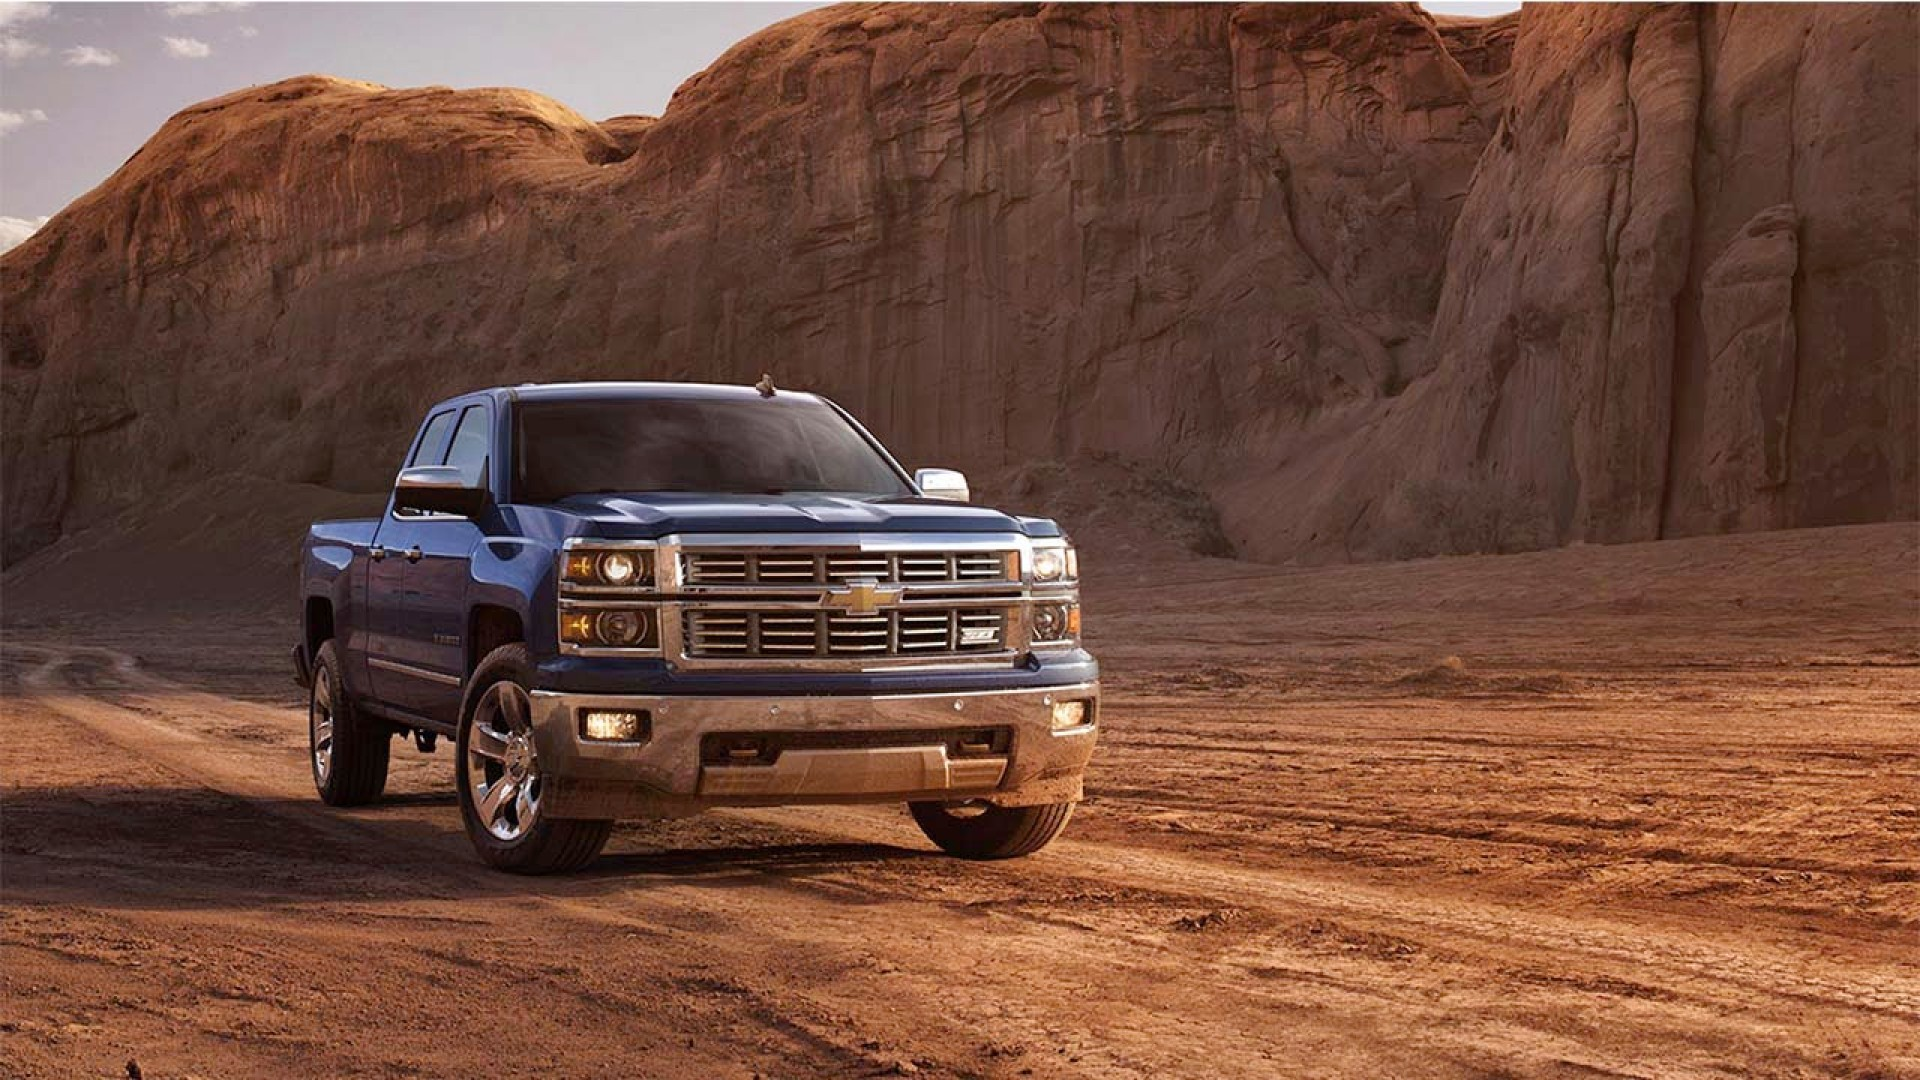 2016 Chevrolet Silverado   Chevrolet 2016, Chevrolet silverado and Chevrolet